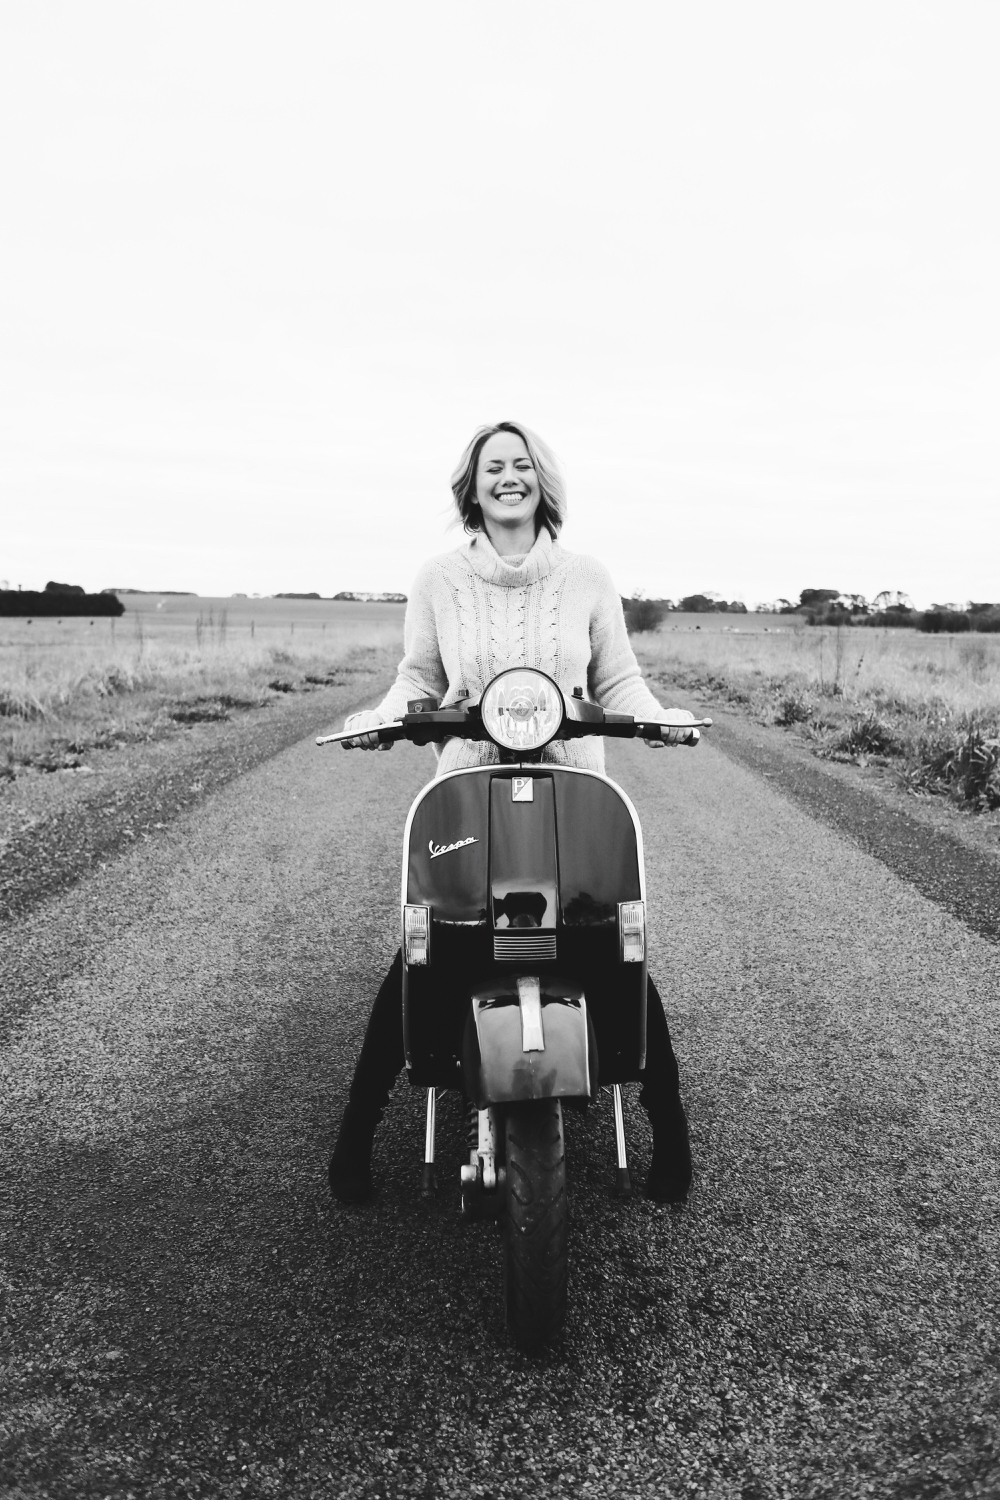 Hayley Carr, life and leadership coach joins a 'biker gang and is living fully/